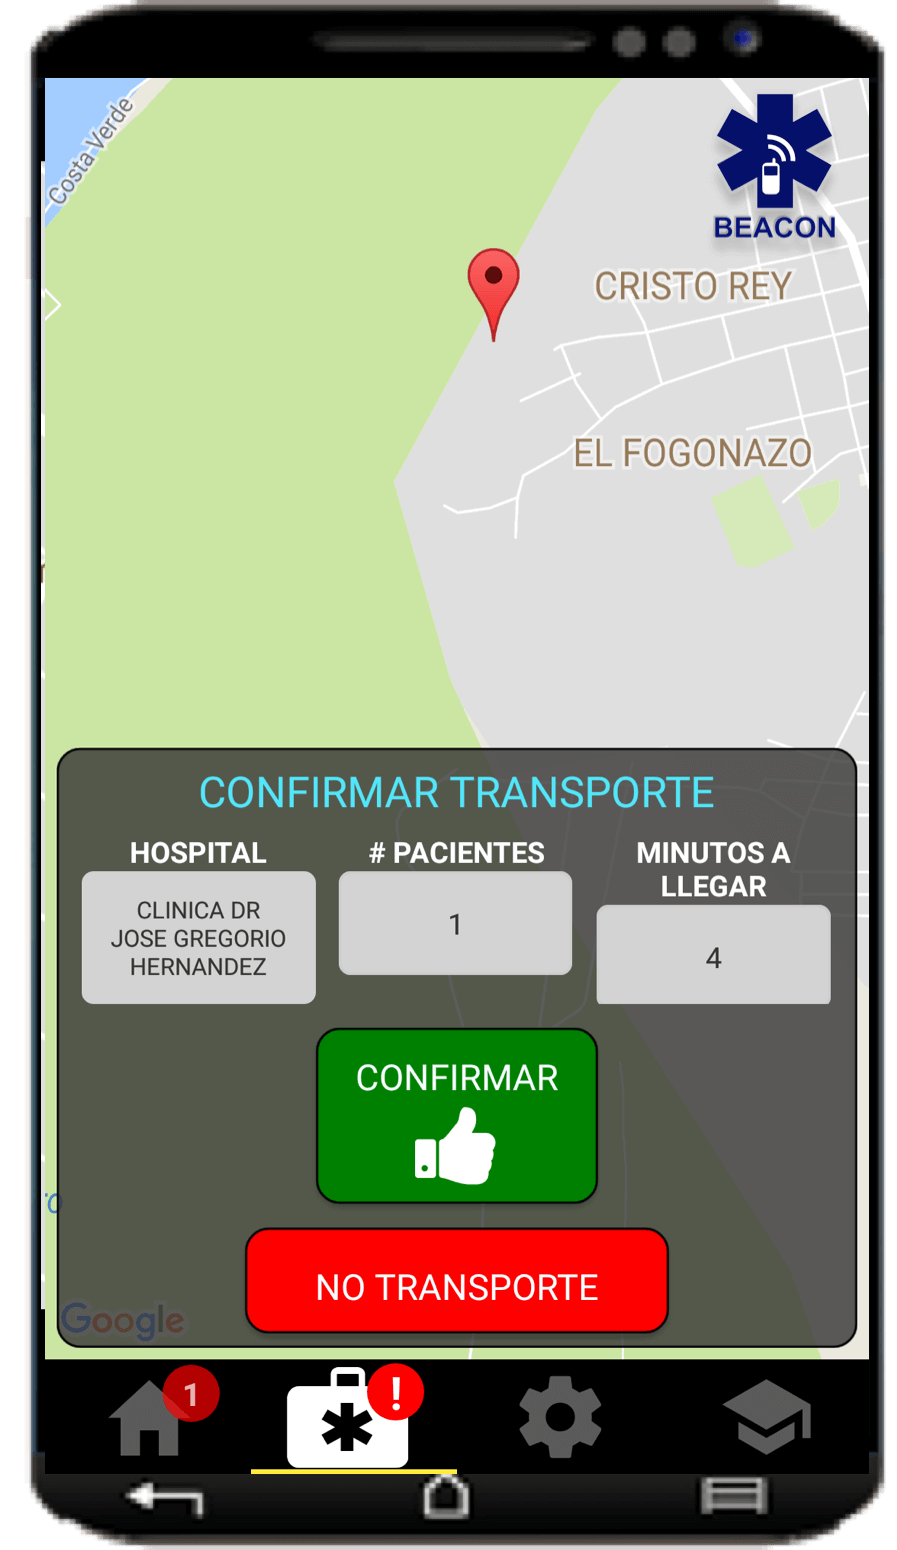 beacon-despacho-de-emergencia_04_confirmar-transporte_android_esp.